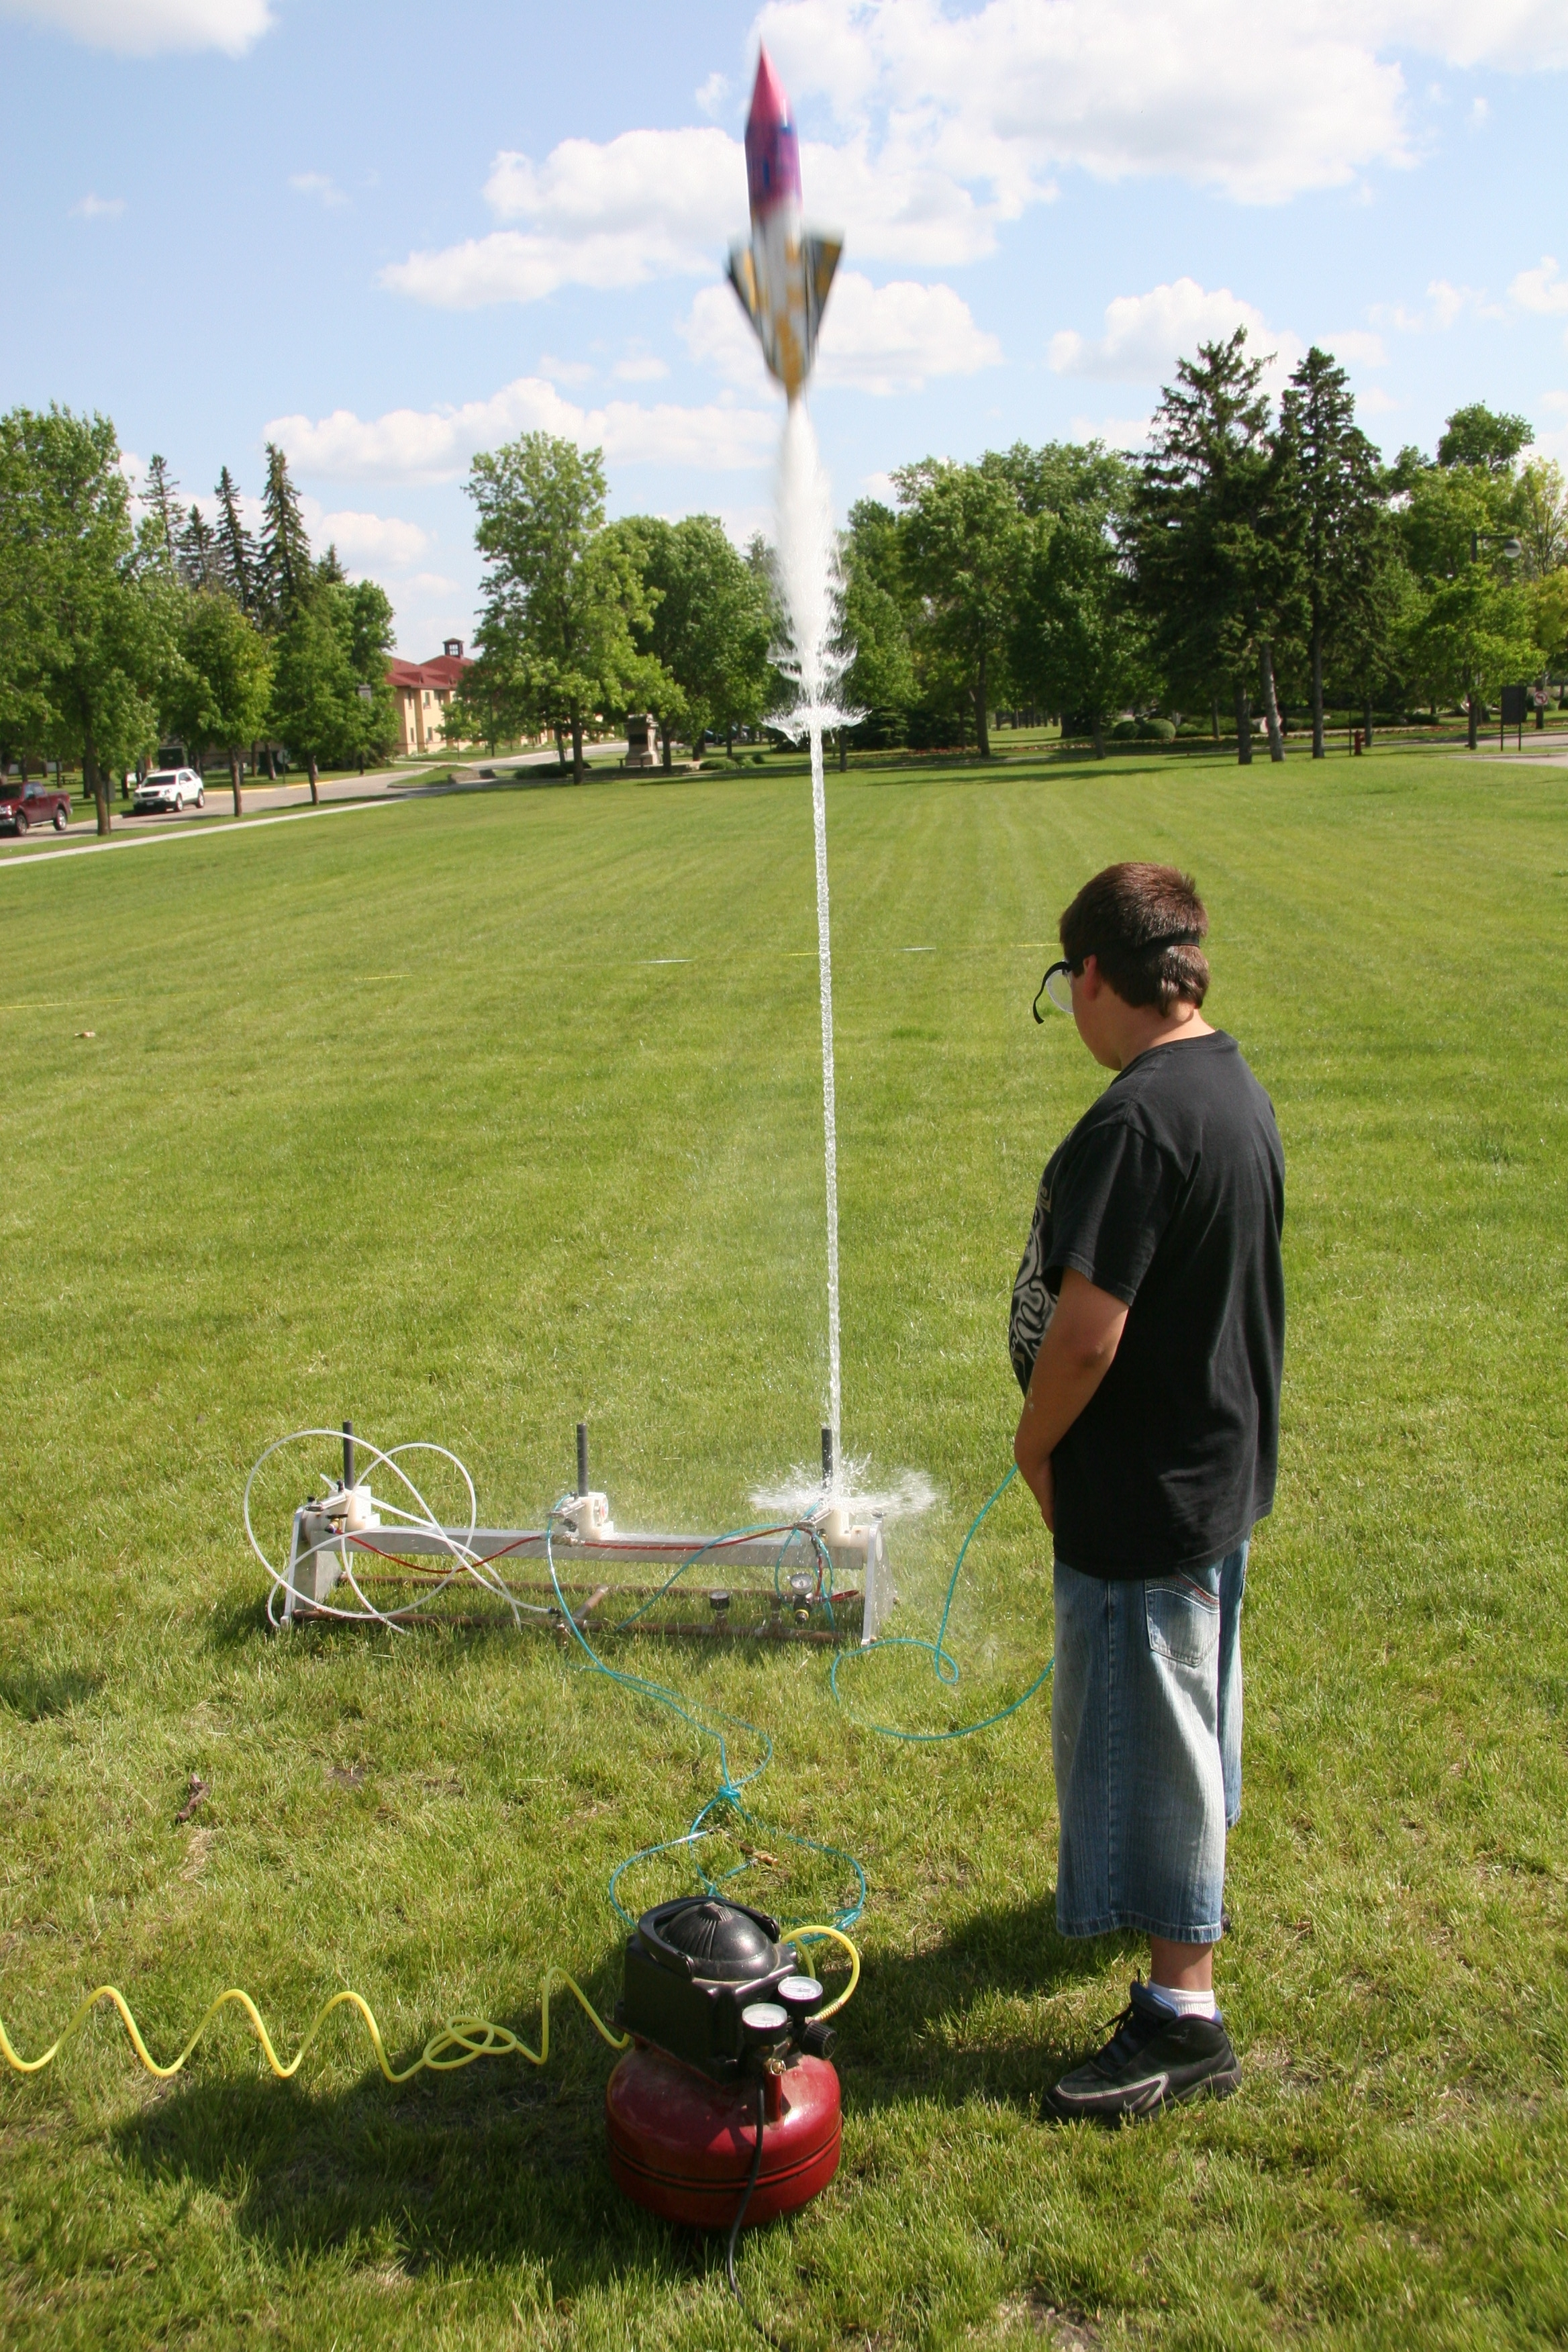 Flying model rockets is a relatively safe and inexpensive way for students to learn the basics of forces and the response of a vehicle to external forces.